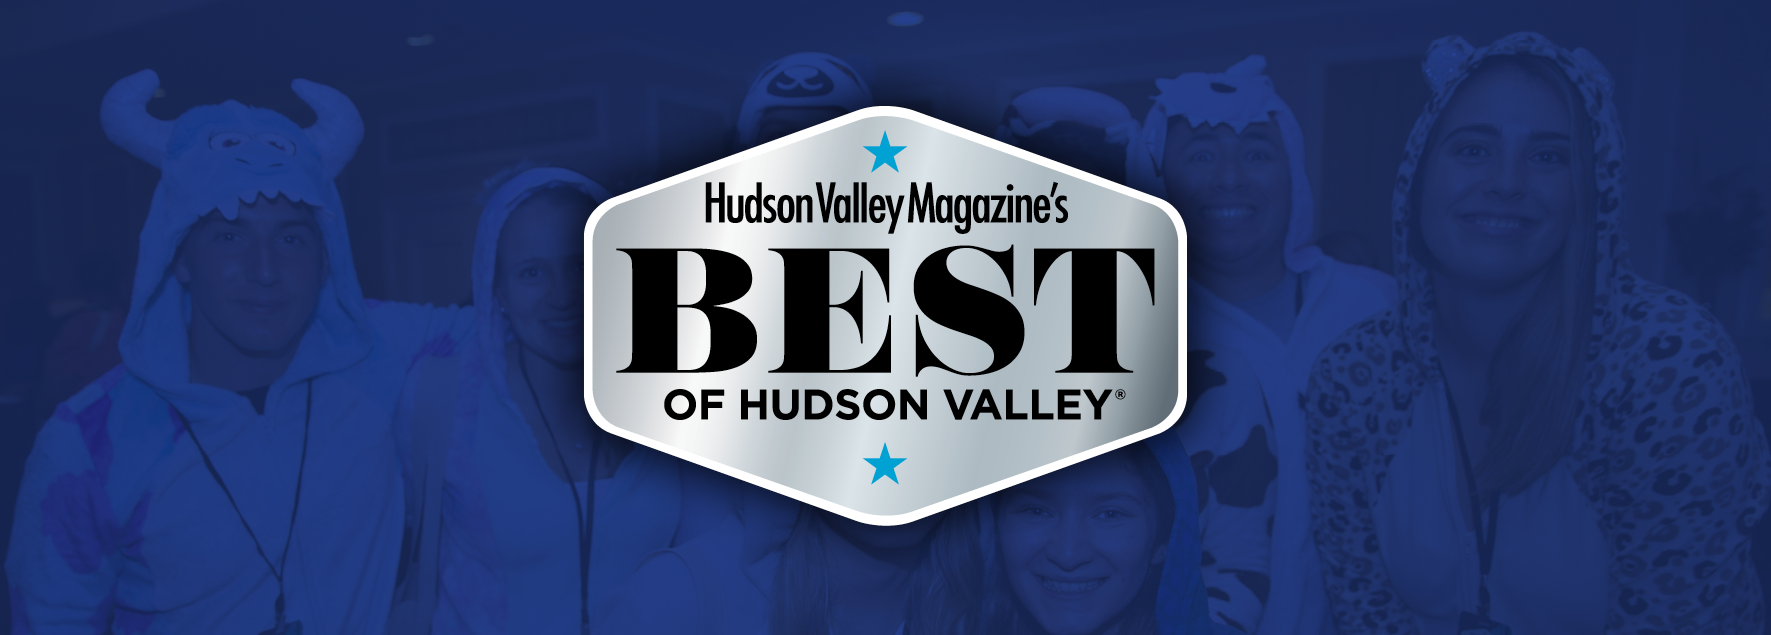 Tickets for 2019 Best of Hudson Valley® Party in Poughkeepsie from ShowClix